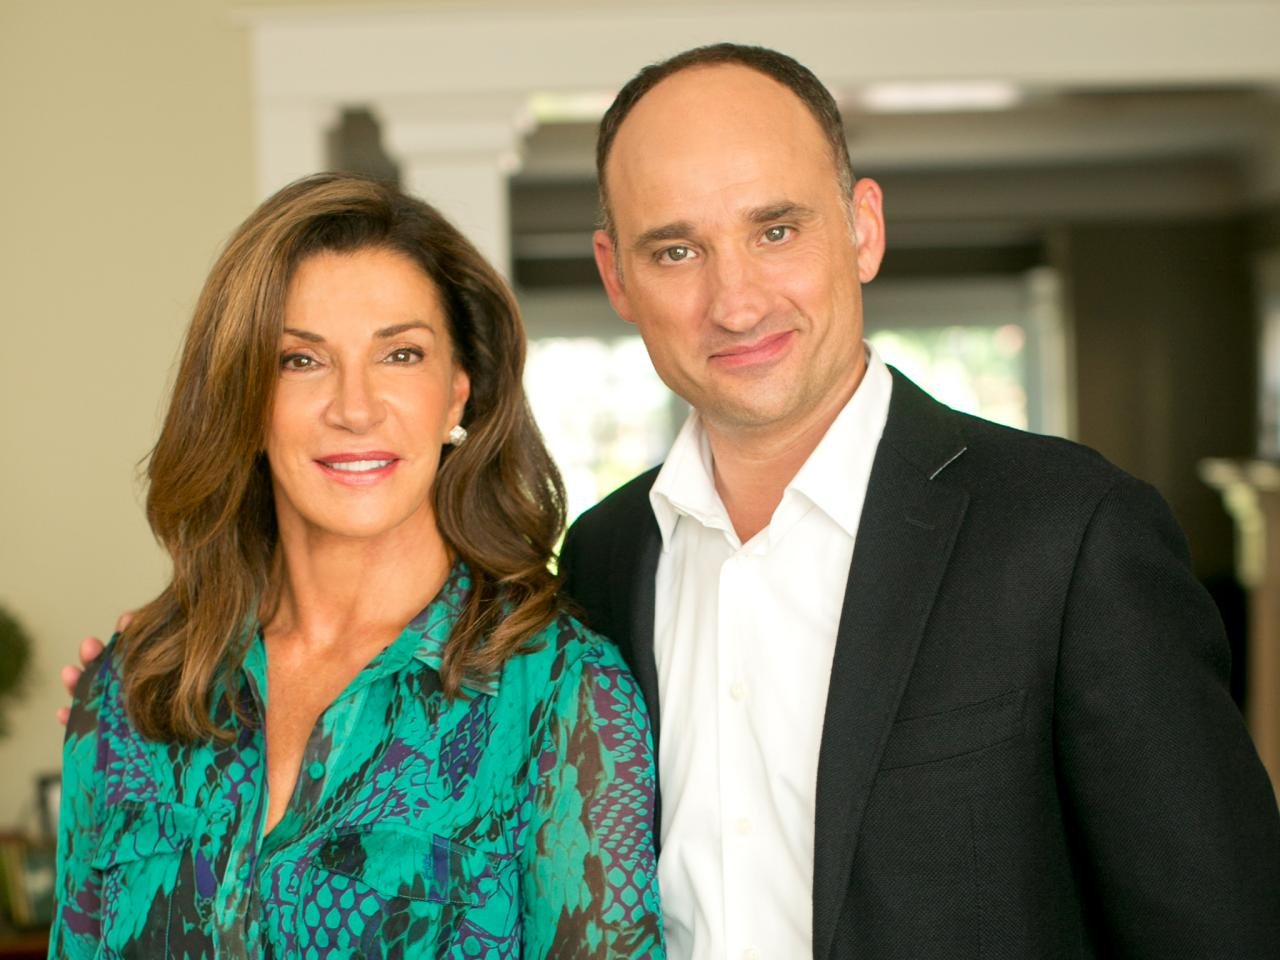 Hillary Farr and David Visentin ofLove It or List It